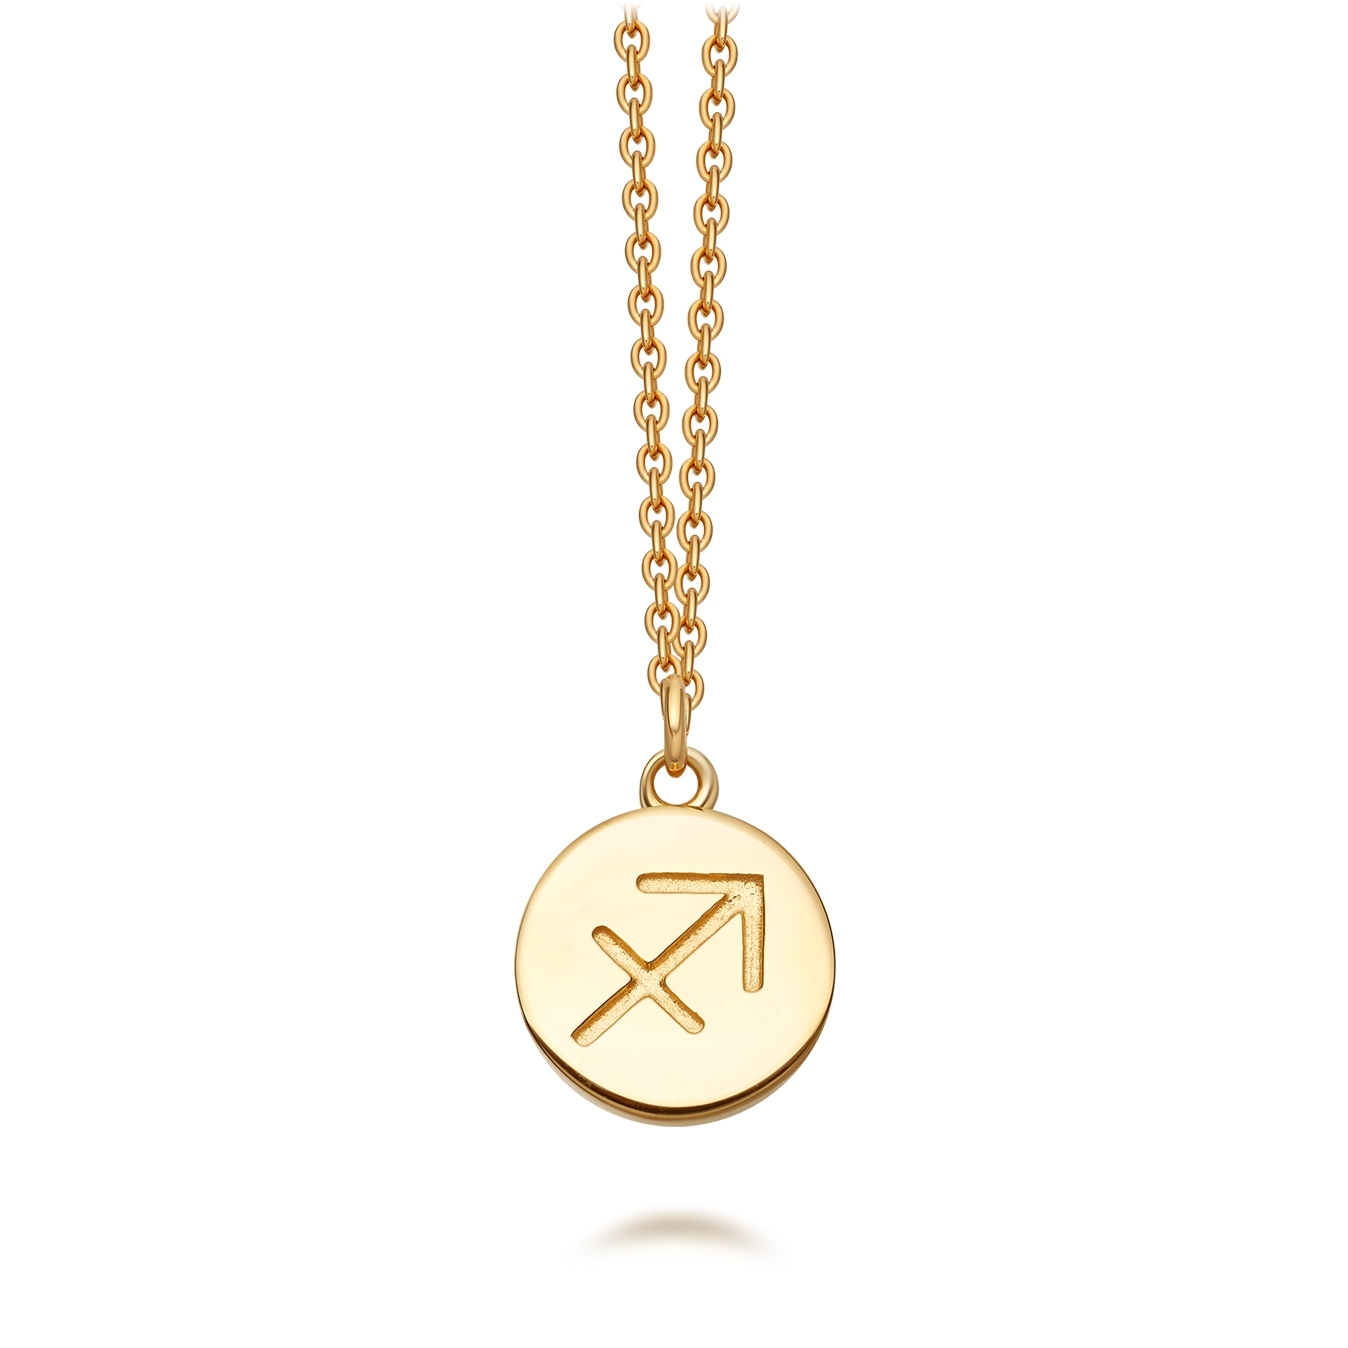 Sagittarius Zodiac Biography Pendant Necklace